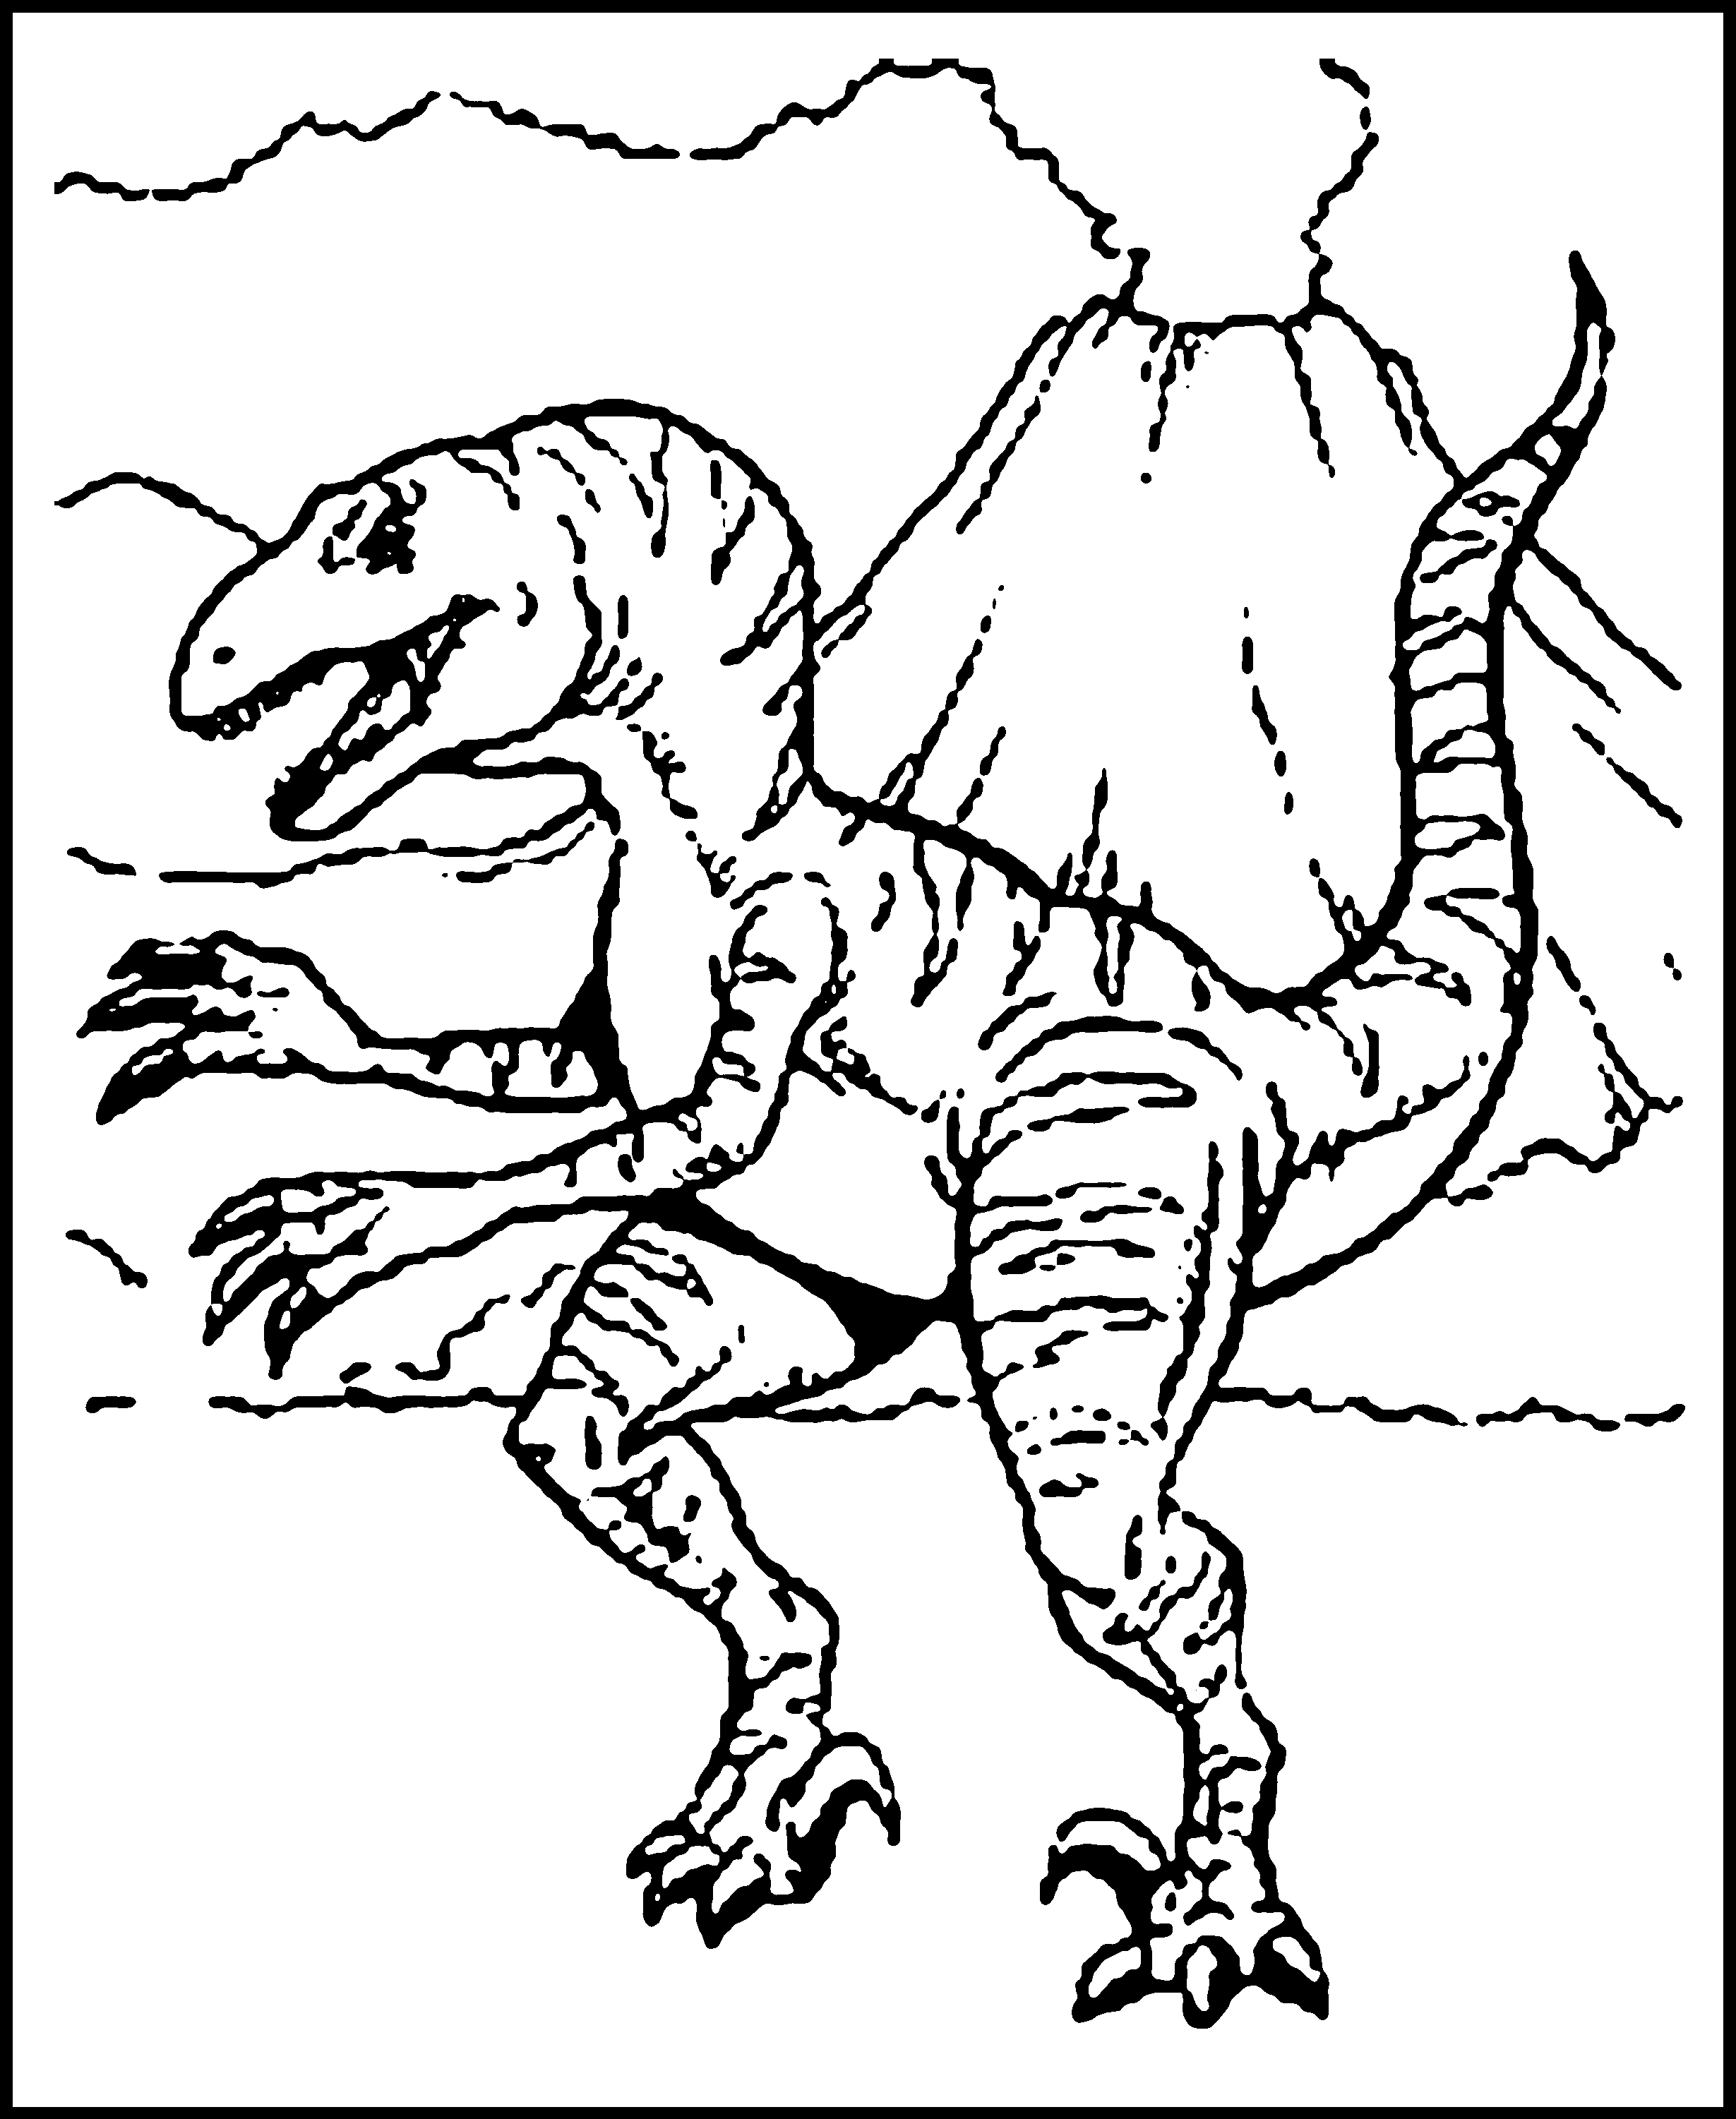 dinosaurus coloring pages - photo#35